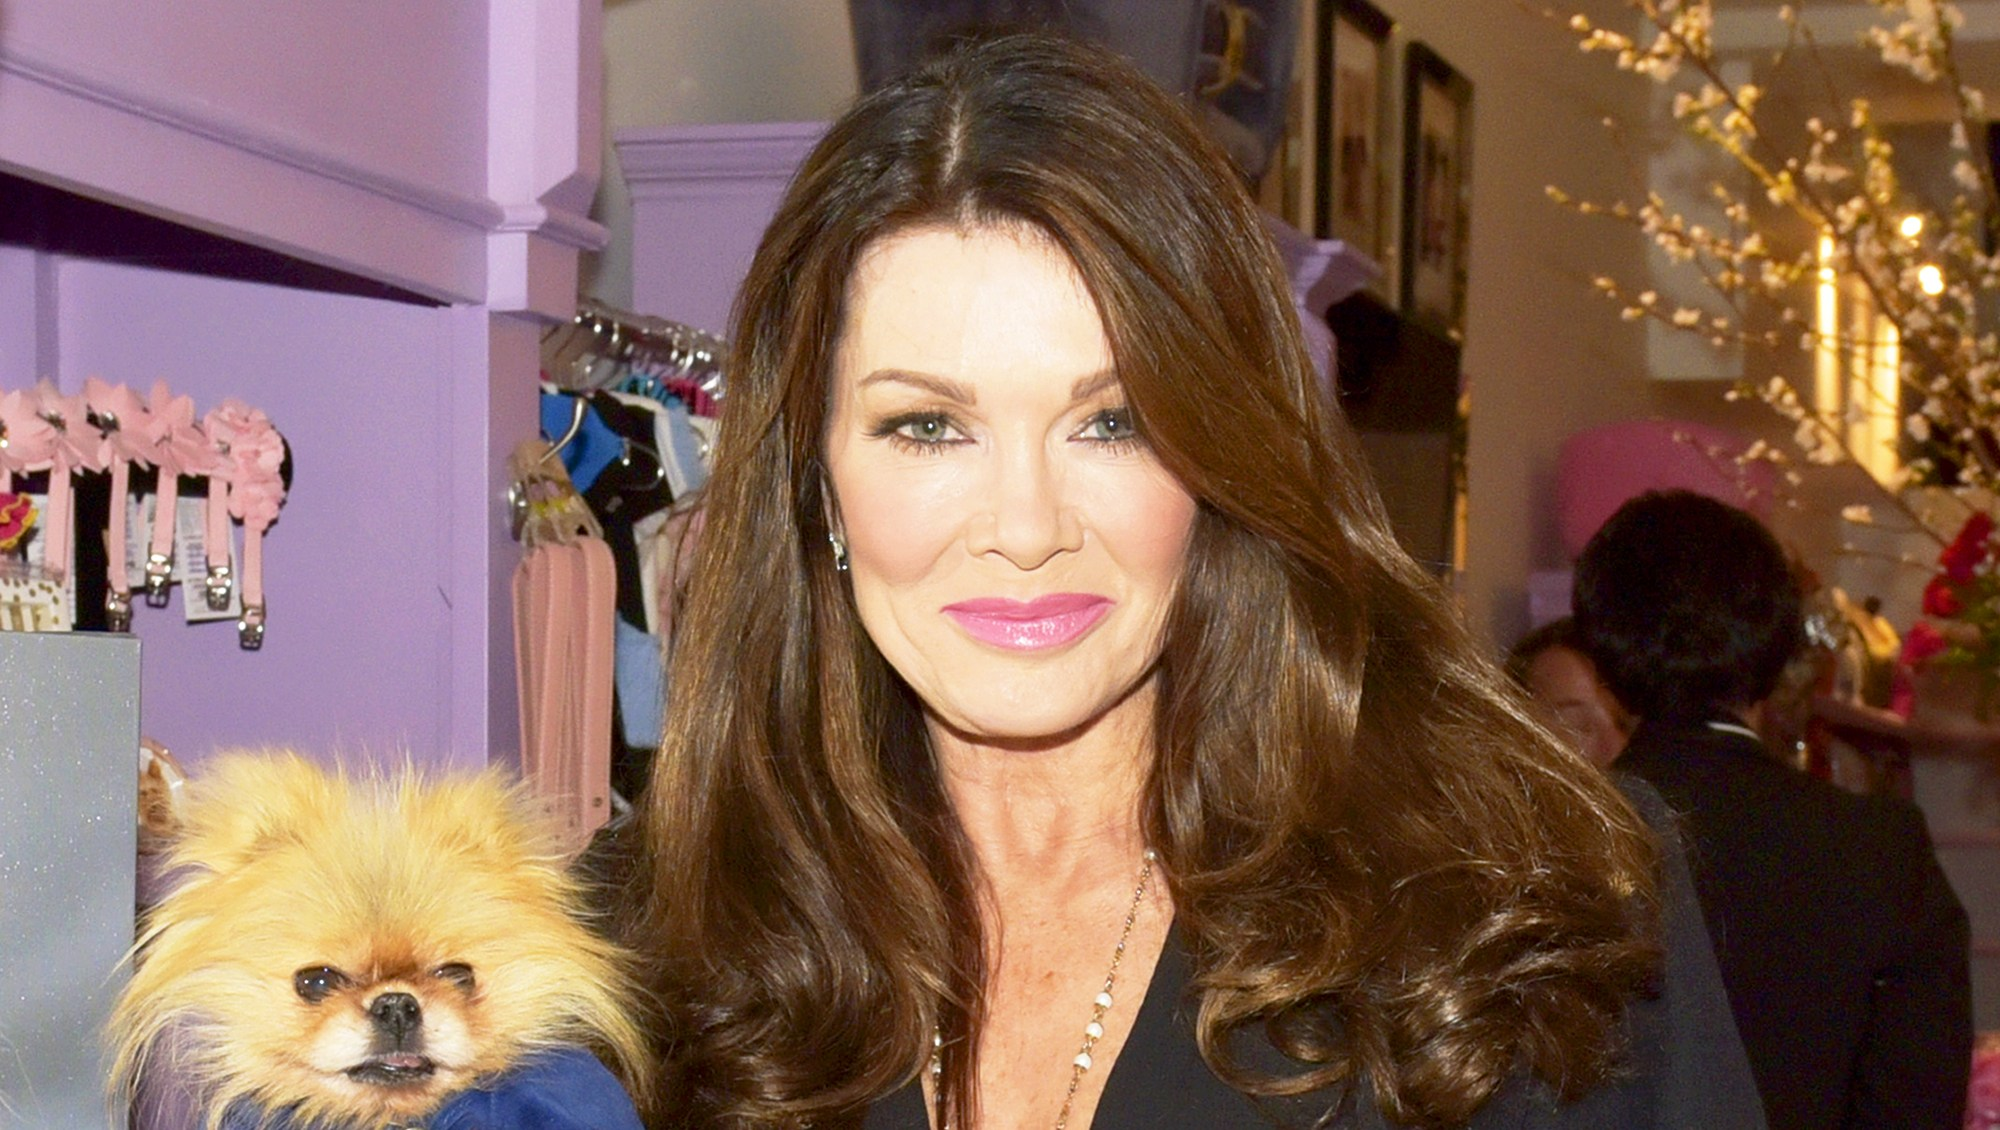 Lisa Vanderpump and dog Giggy at The Vanderpump Dog Center in Los Angeles, California.